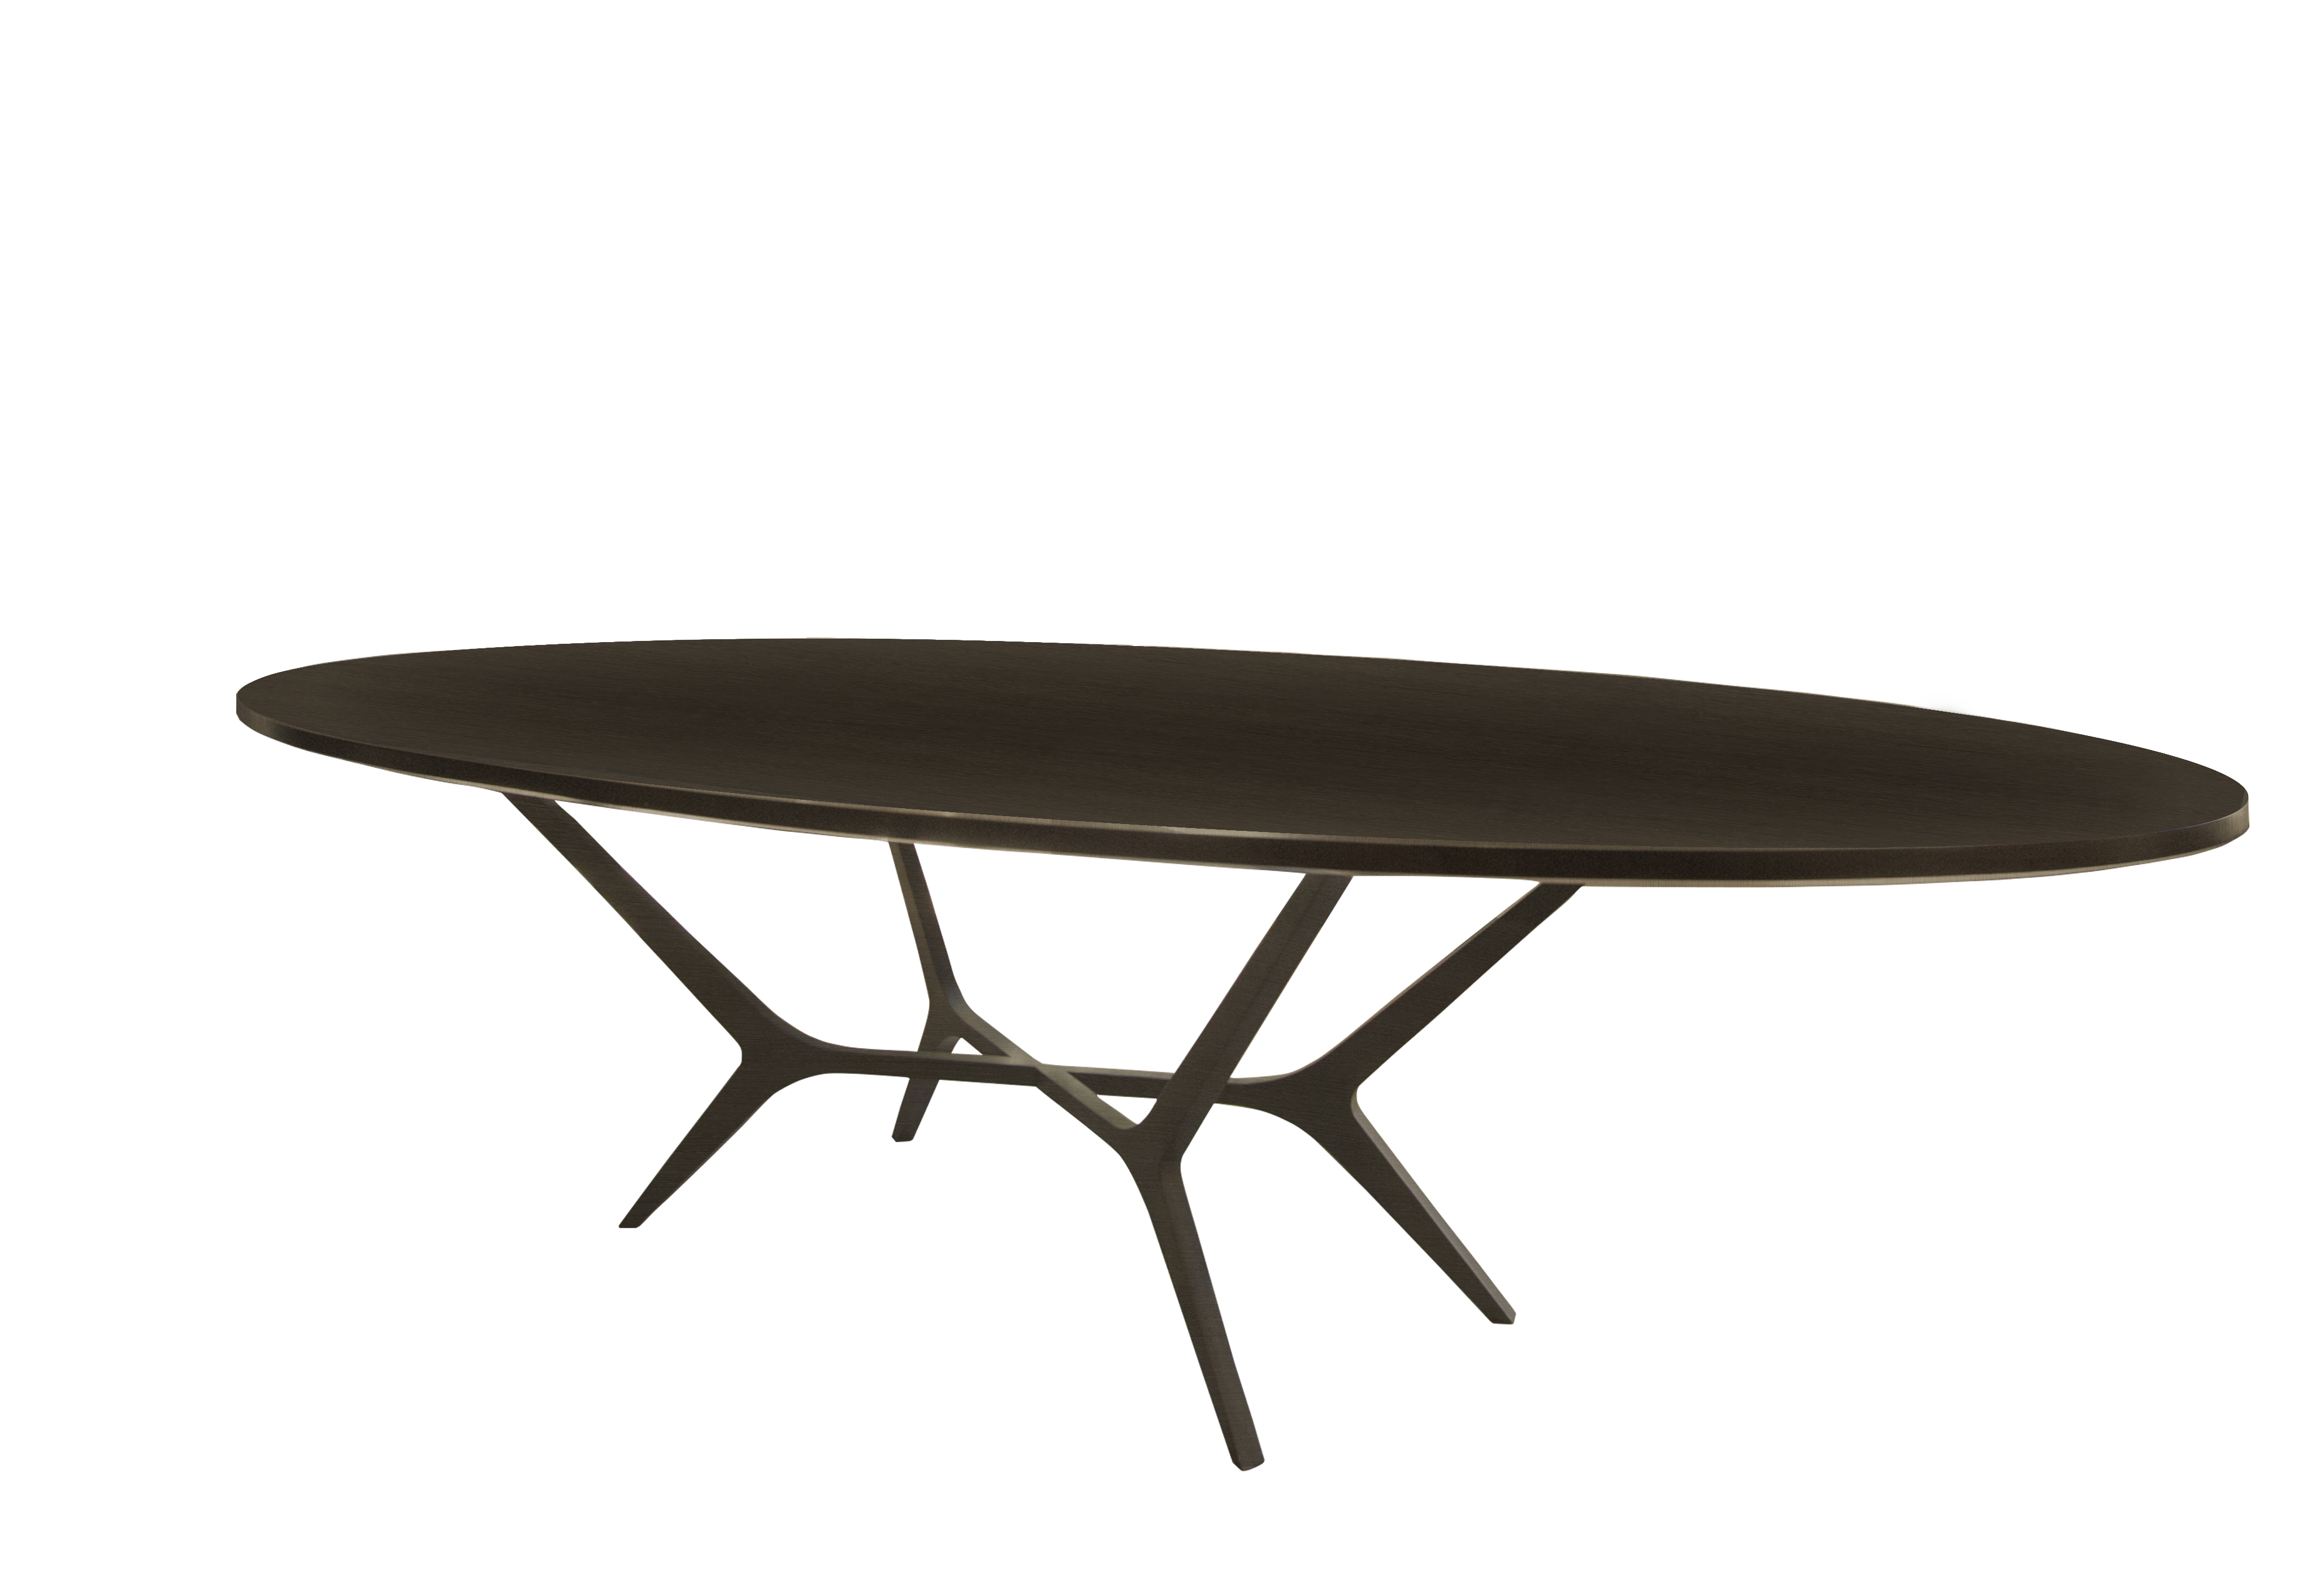 Hondrum Oval Dining Table Dining Tables Furniture Decorus Furniture